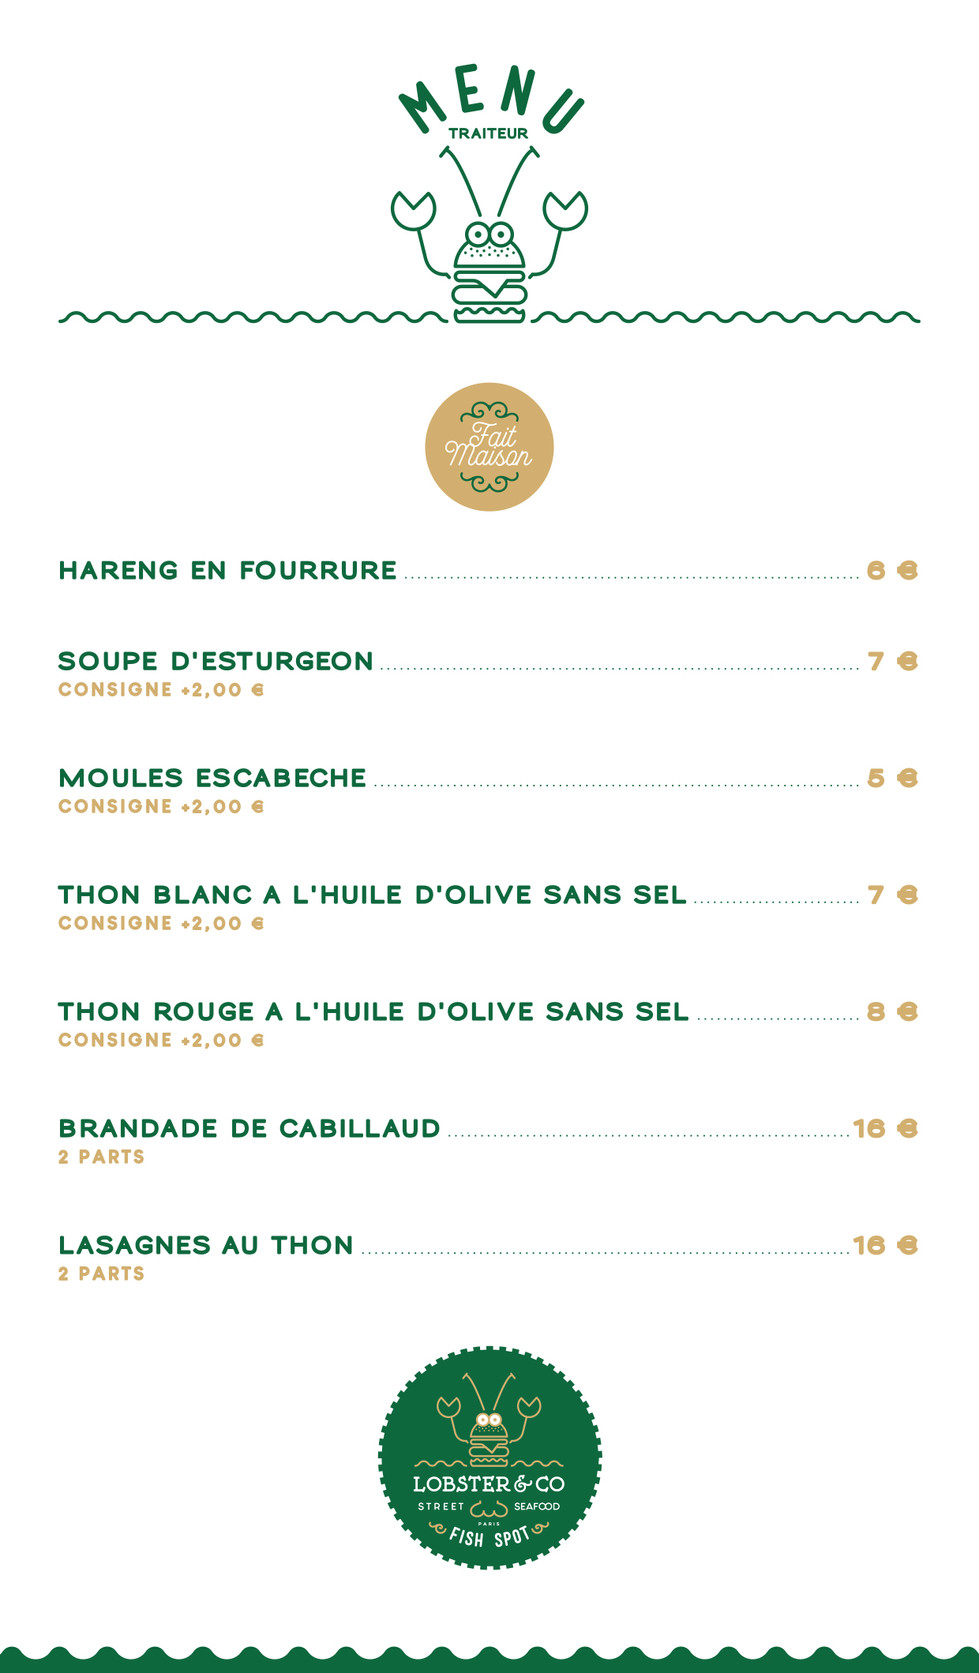 L&C_MENU TRAITEUR.jpg